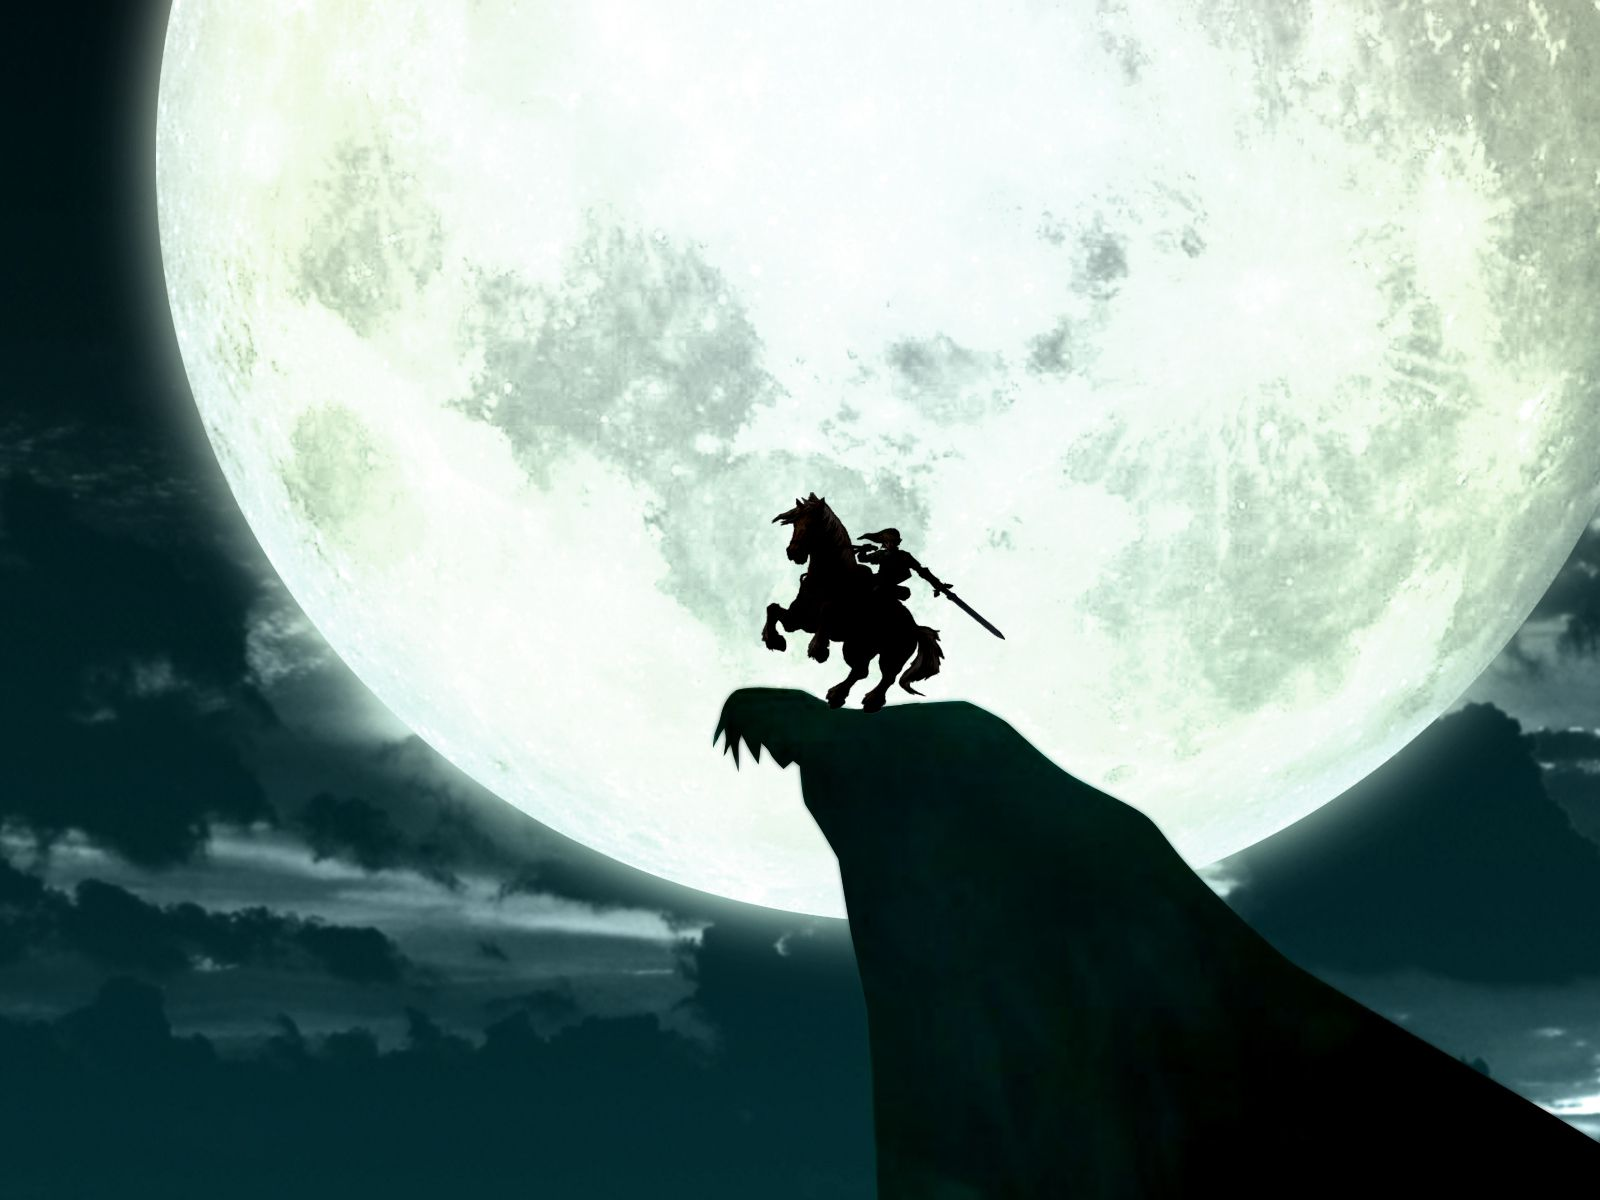 Hd wallpaper zelda - Link The Legend Of Zelda Wallpaper X 1600x1200px Hd Wallpapers 3076 Ngewall